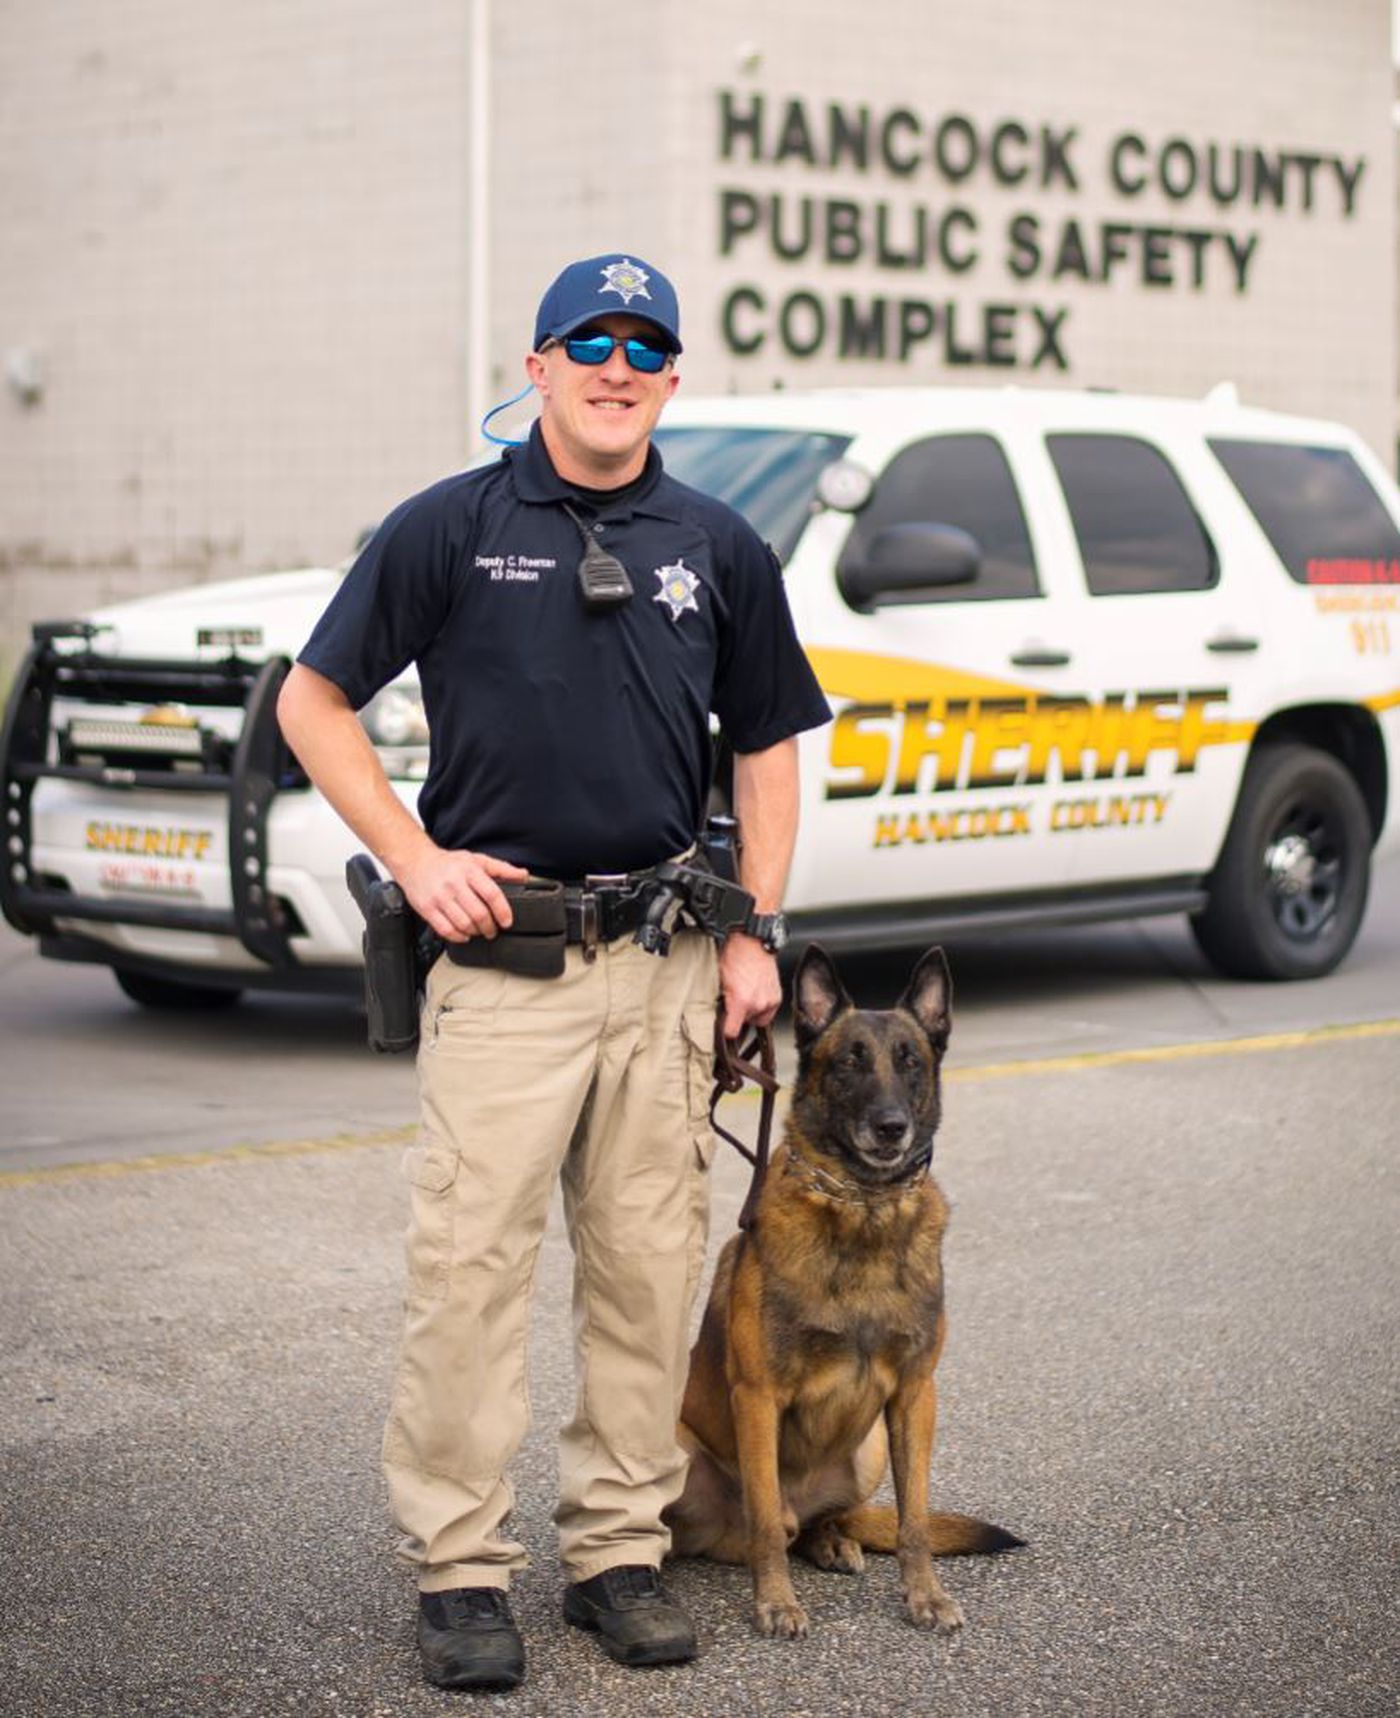 Canine deputy stabbed in abdomen while pursuing suspect in Hancock